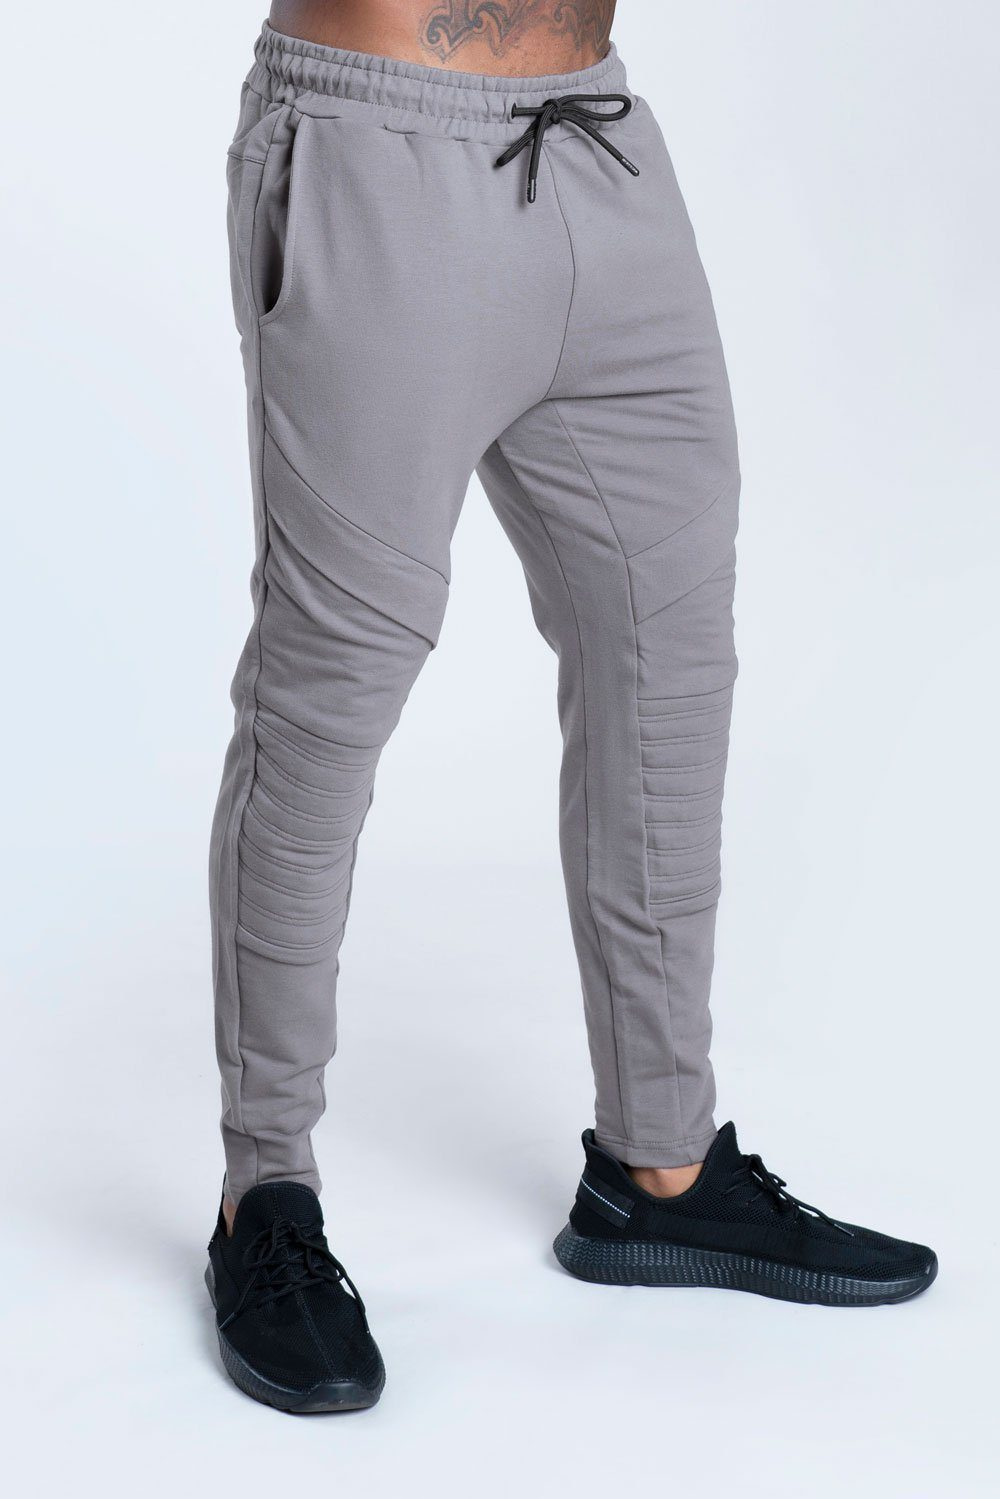 TLF Zeus Joggers - Joggers - TLF Apparel | Take Life Further